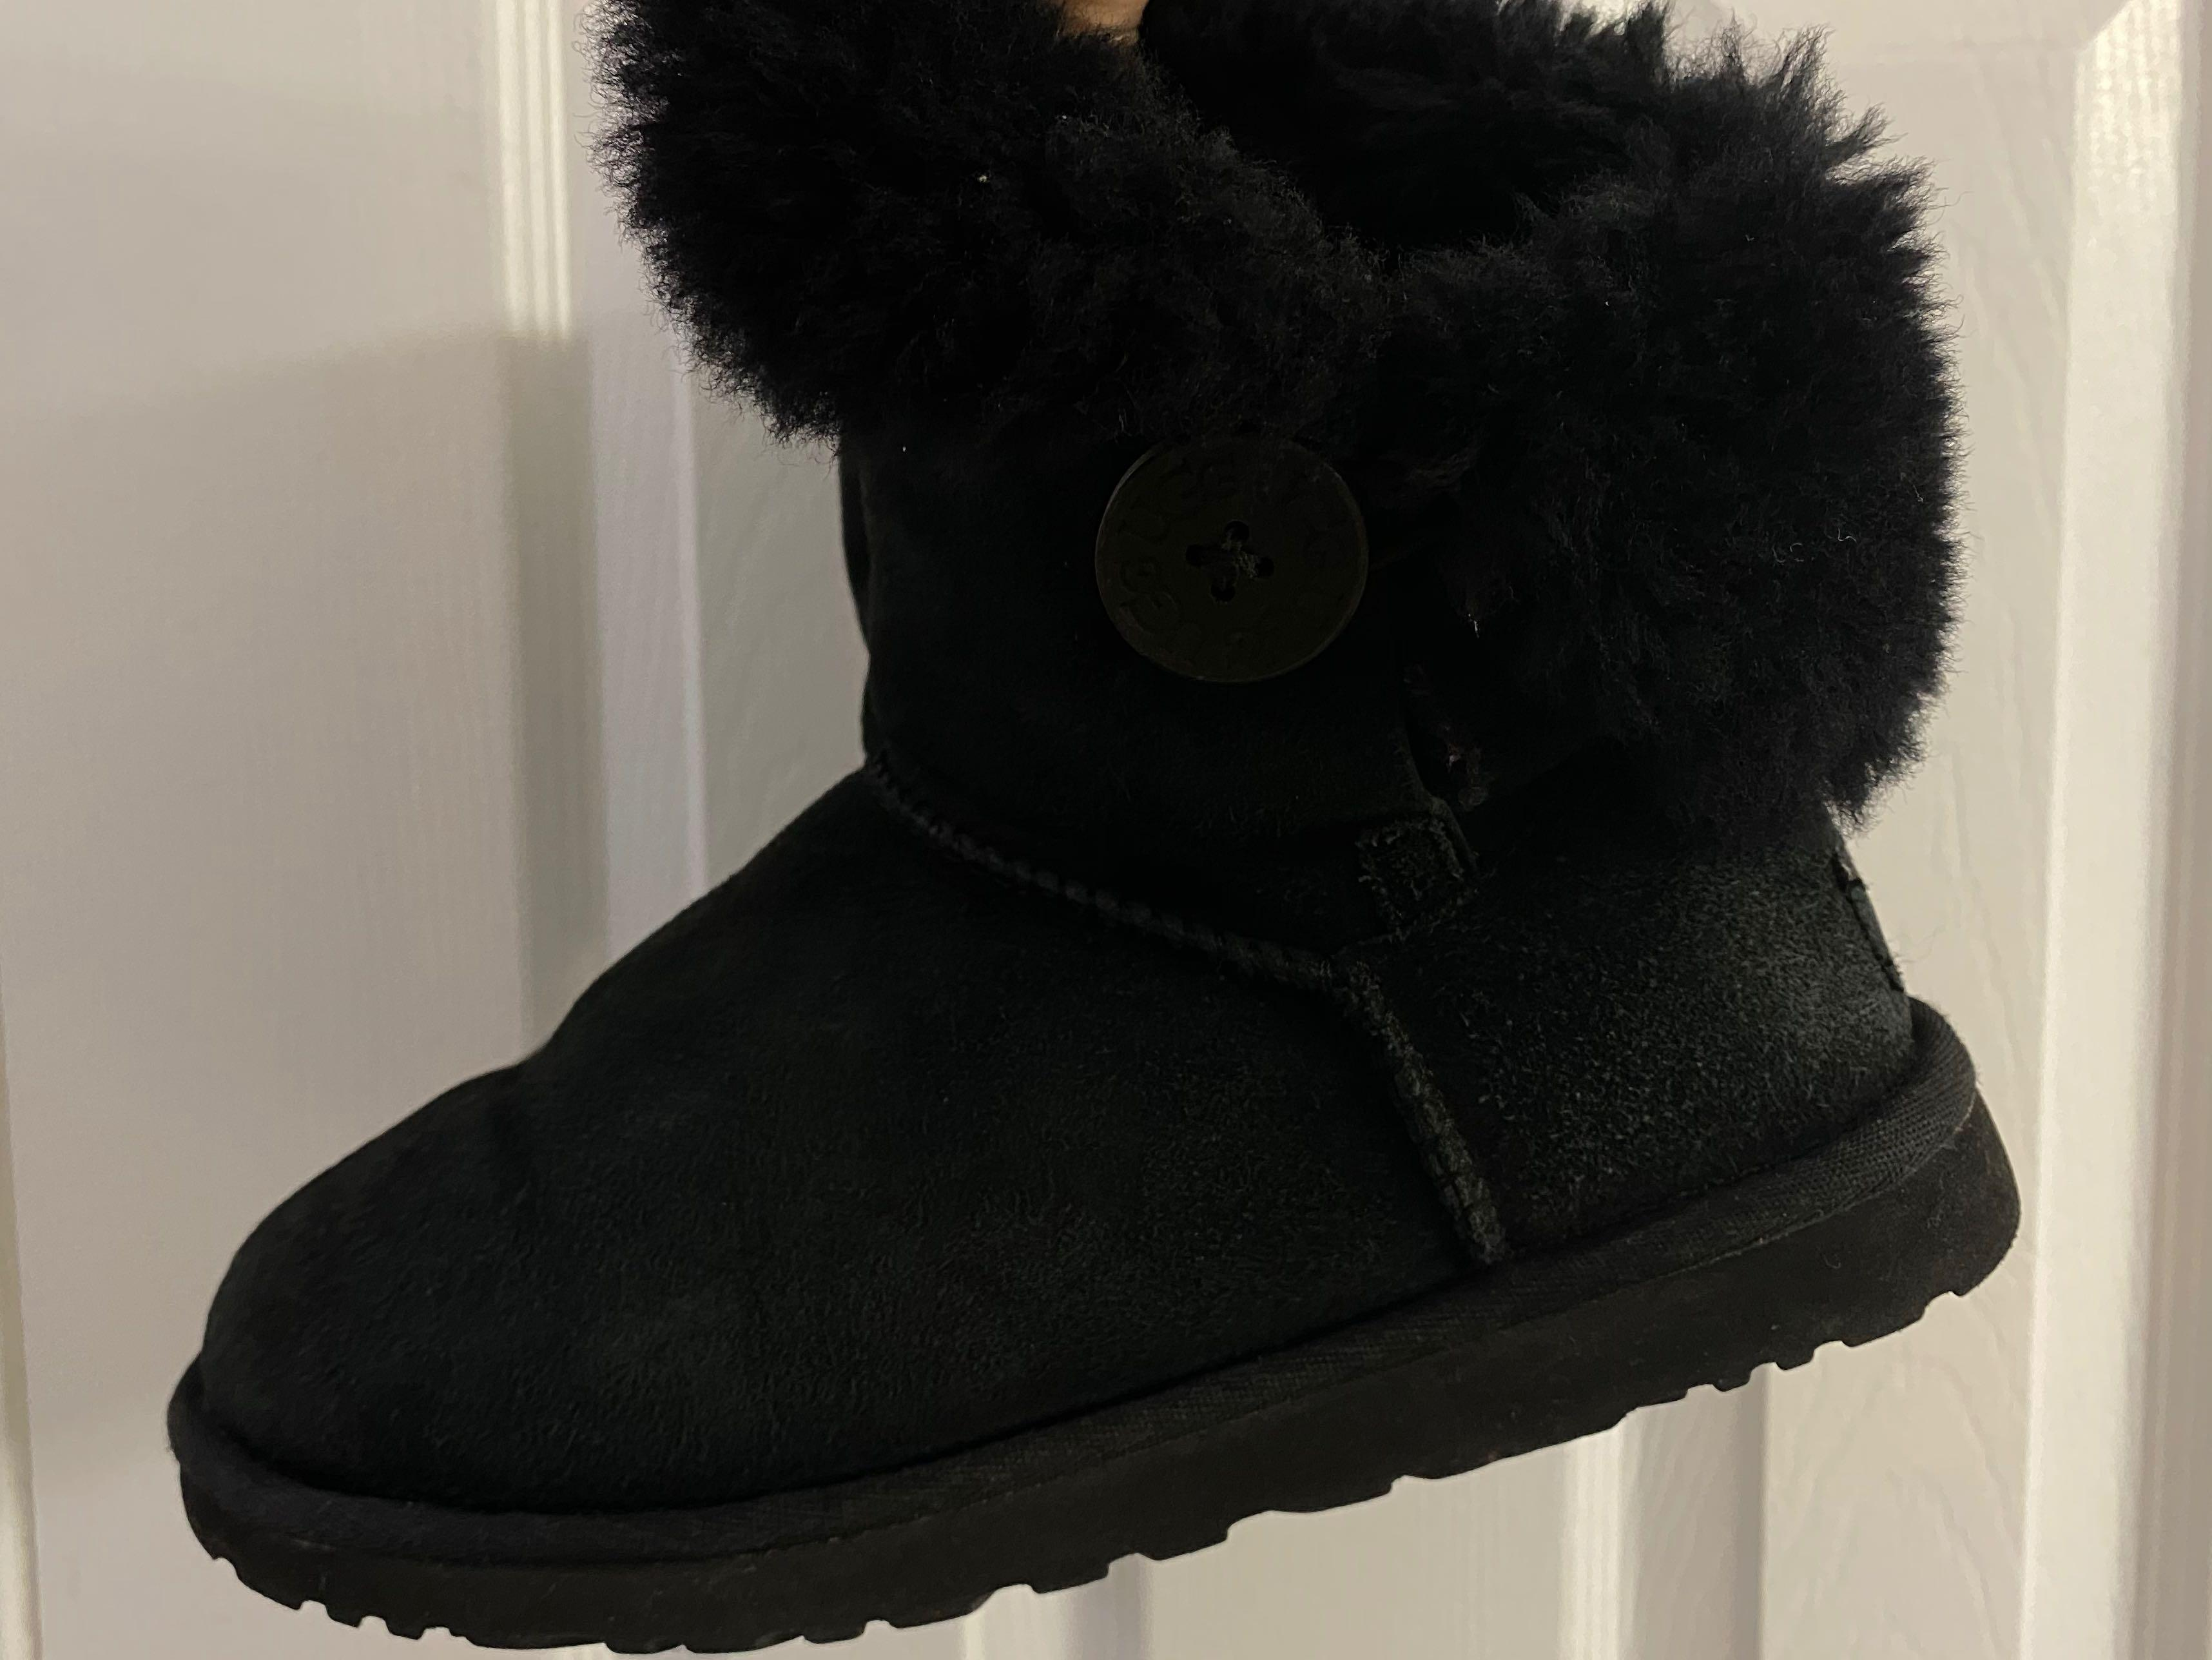 UGG Bailey Button II Boot - Black (Size 6)